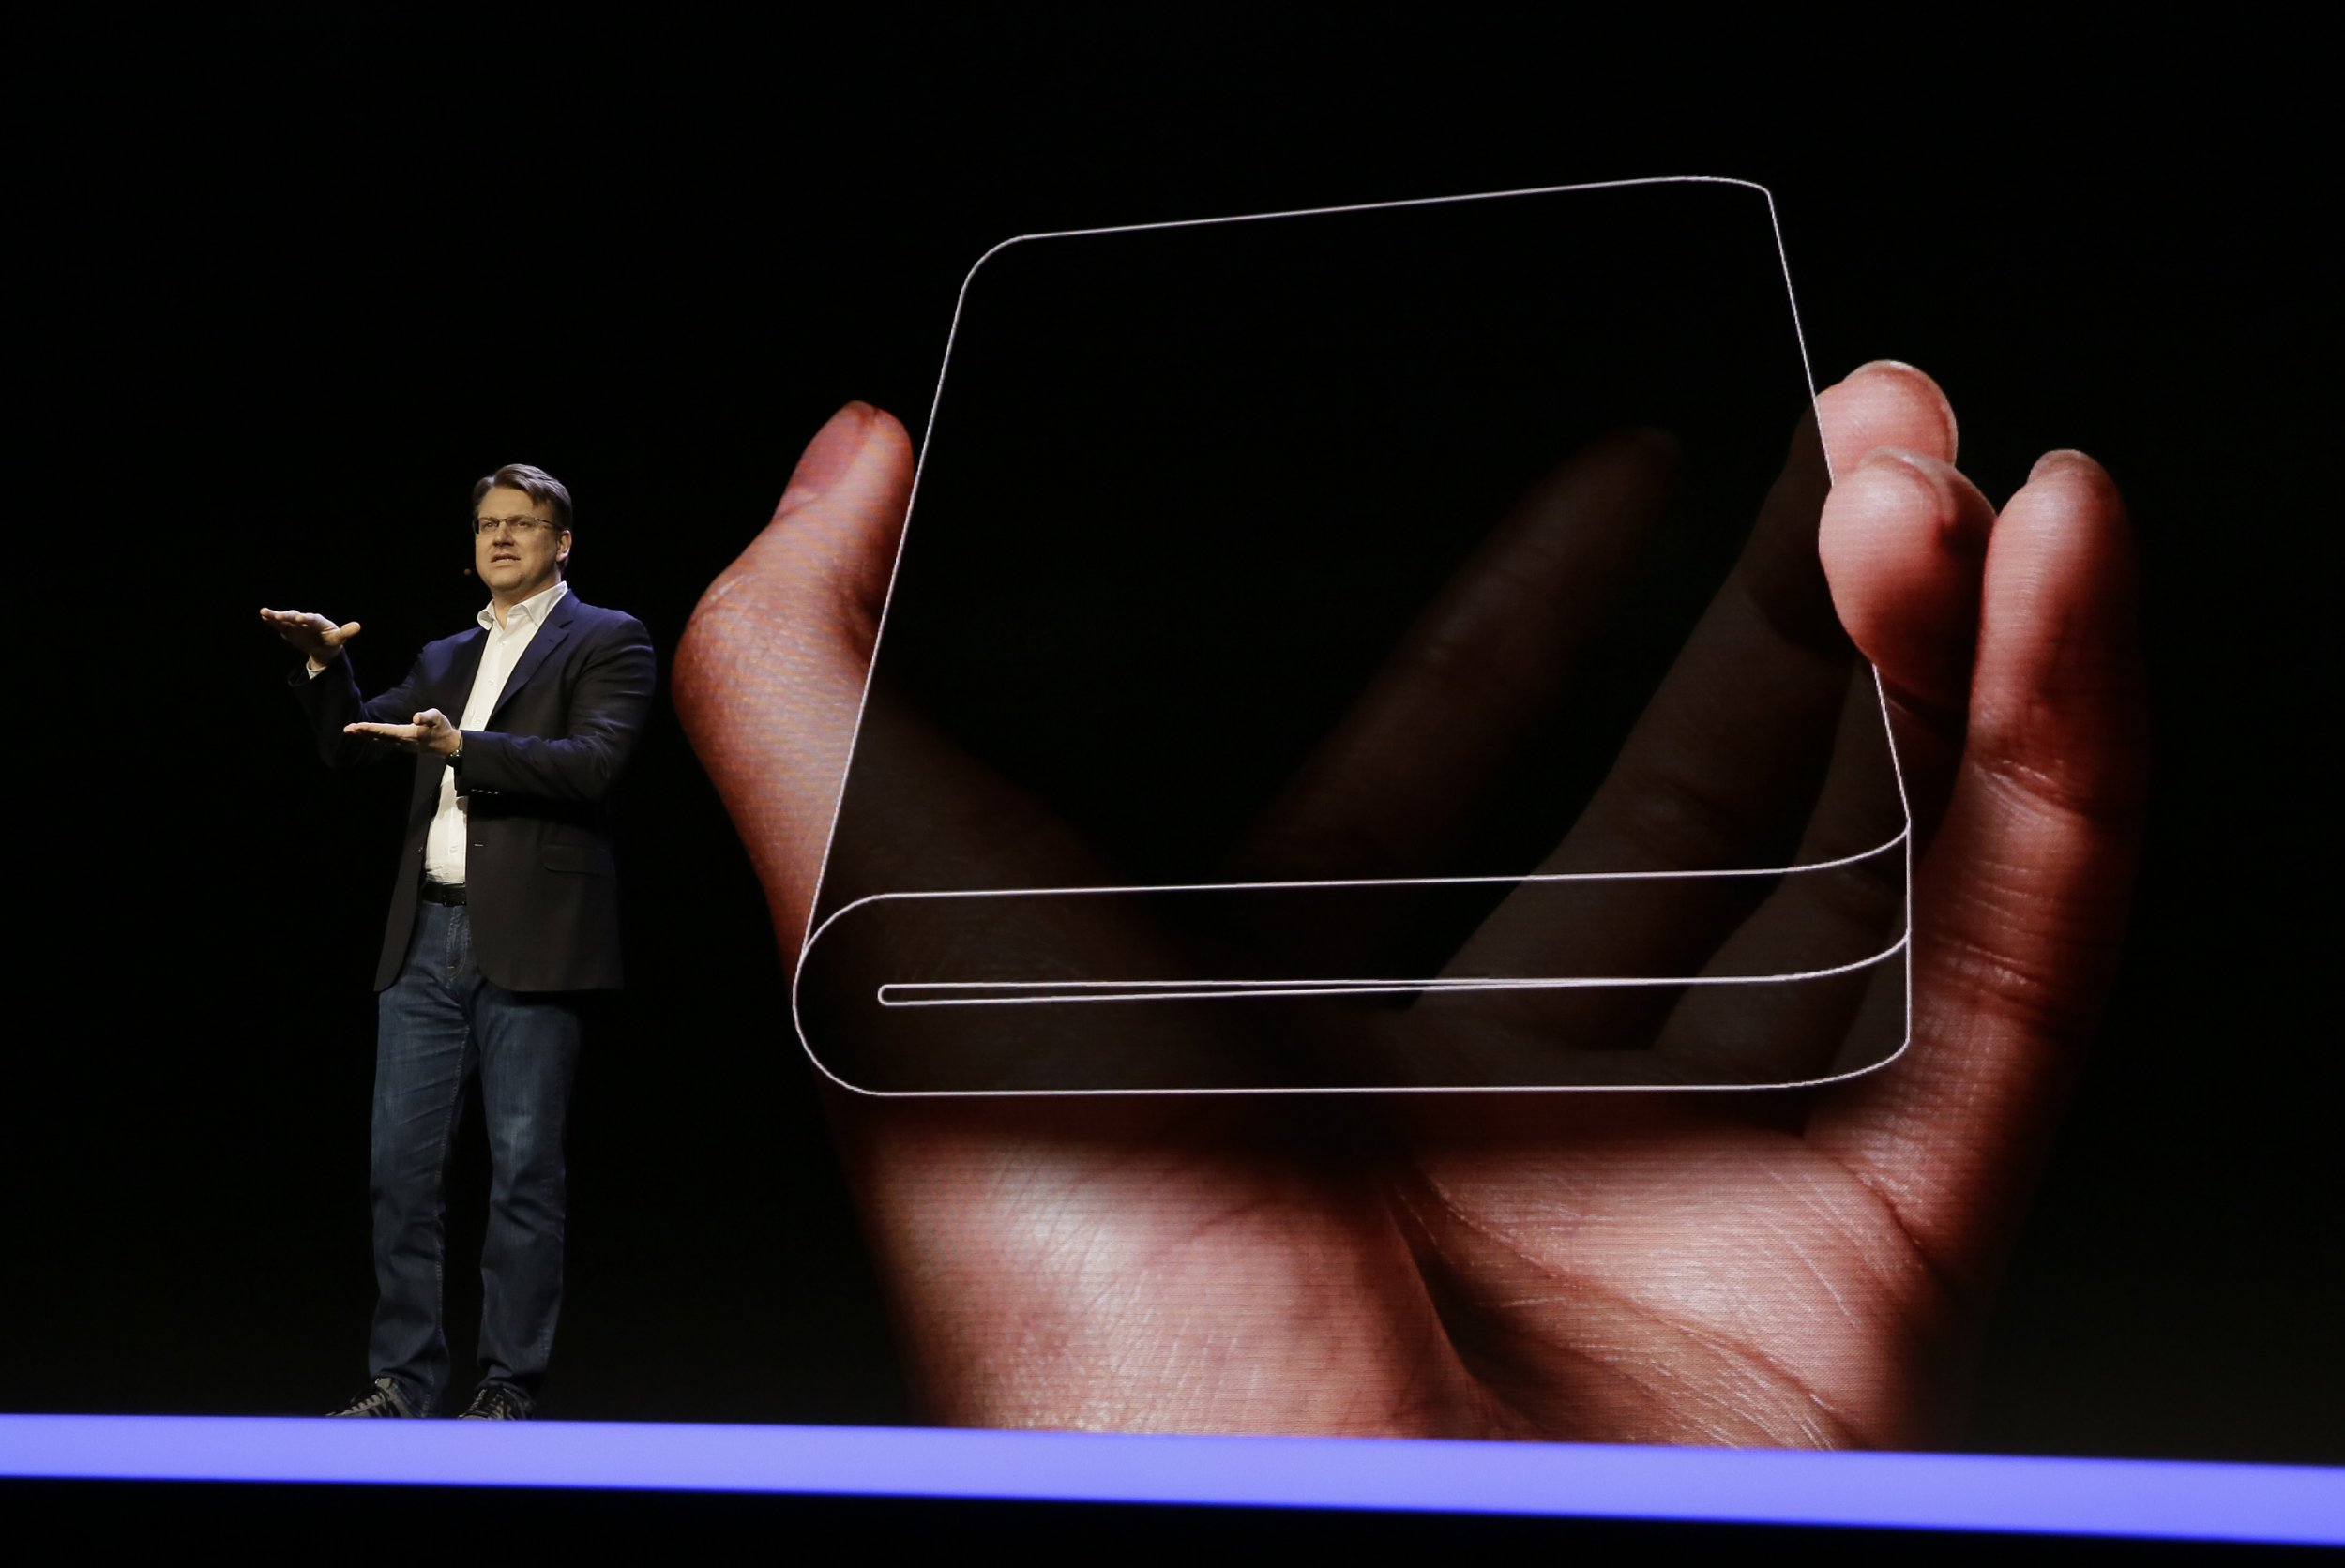 Justin Denison, SVP of Mobile Product Development, talks about the Infinity Flex Display of a folding smartphone during the keynote address of the Samsung Developer Conference, Wednesday, Nov. 7, 2018, in San Francisco. (AP Photo/Eric Risberg)